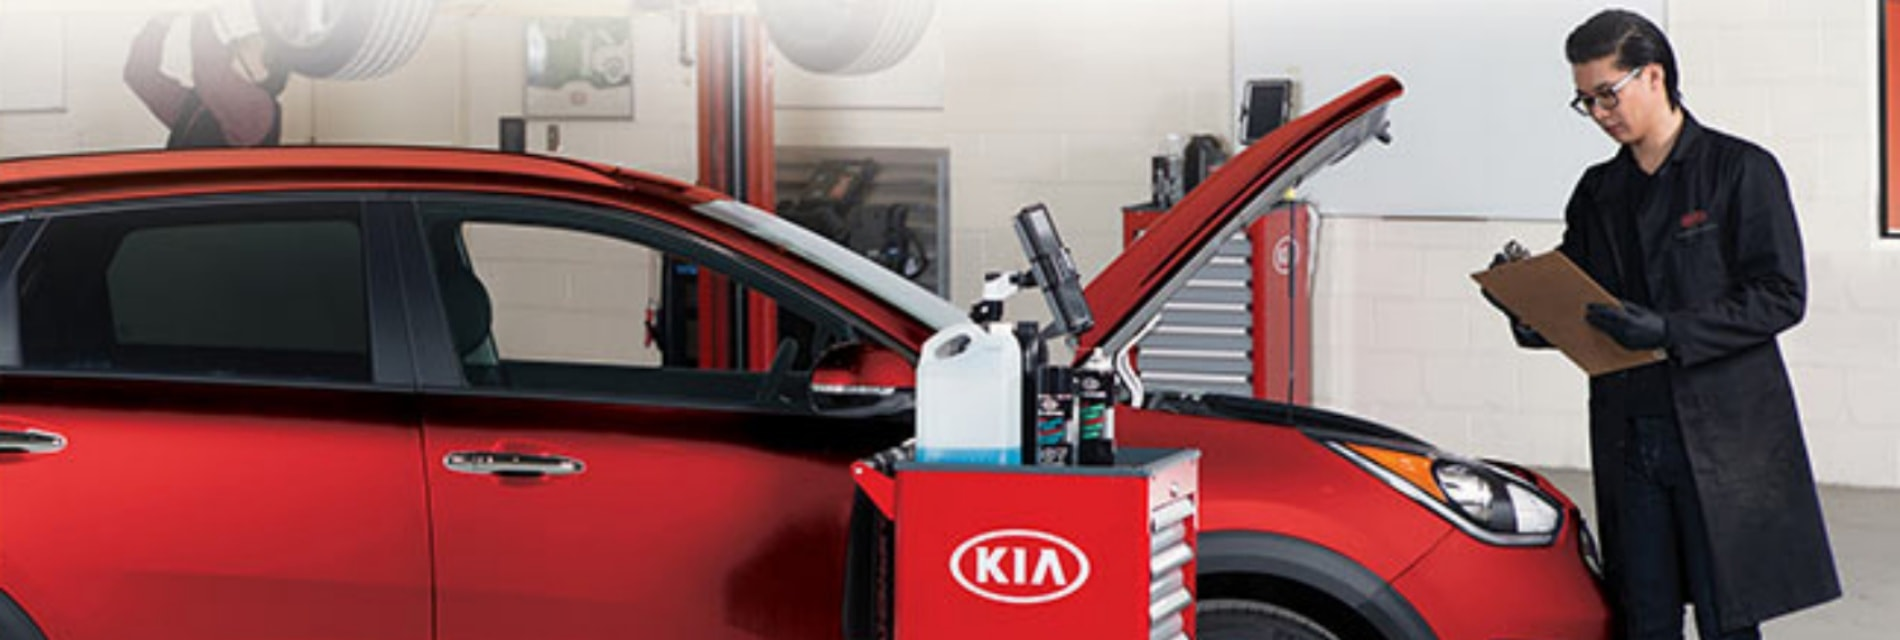 Kia Service Department